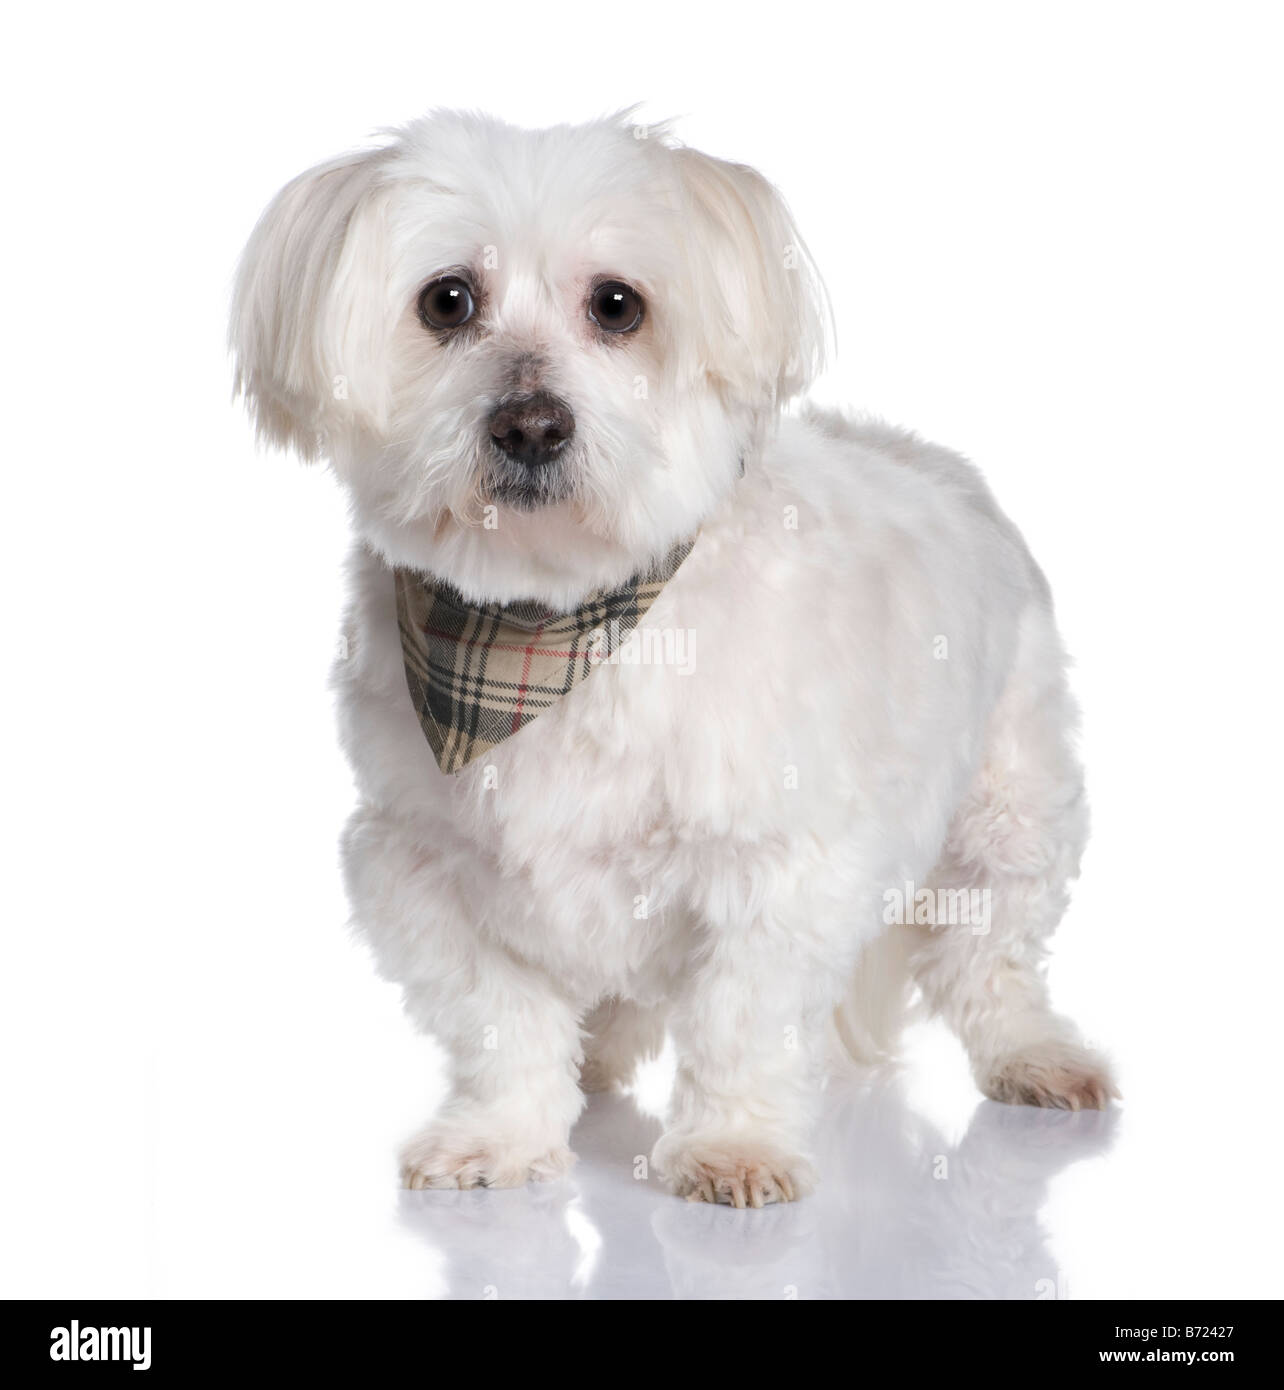 maltese dog 13 years in front of A white background - Stock Image